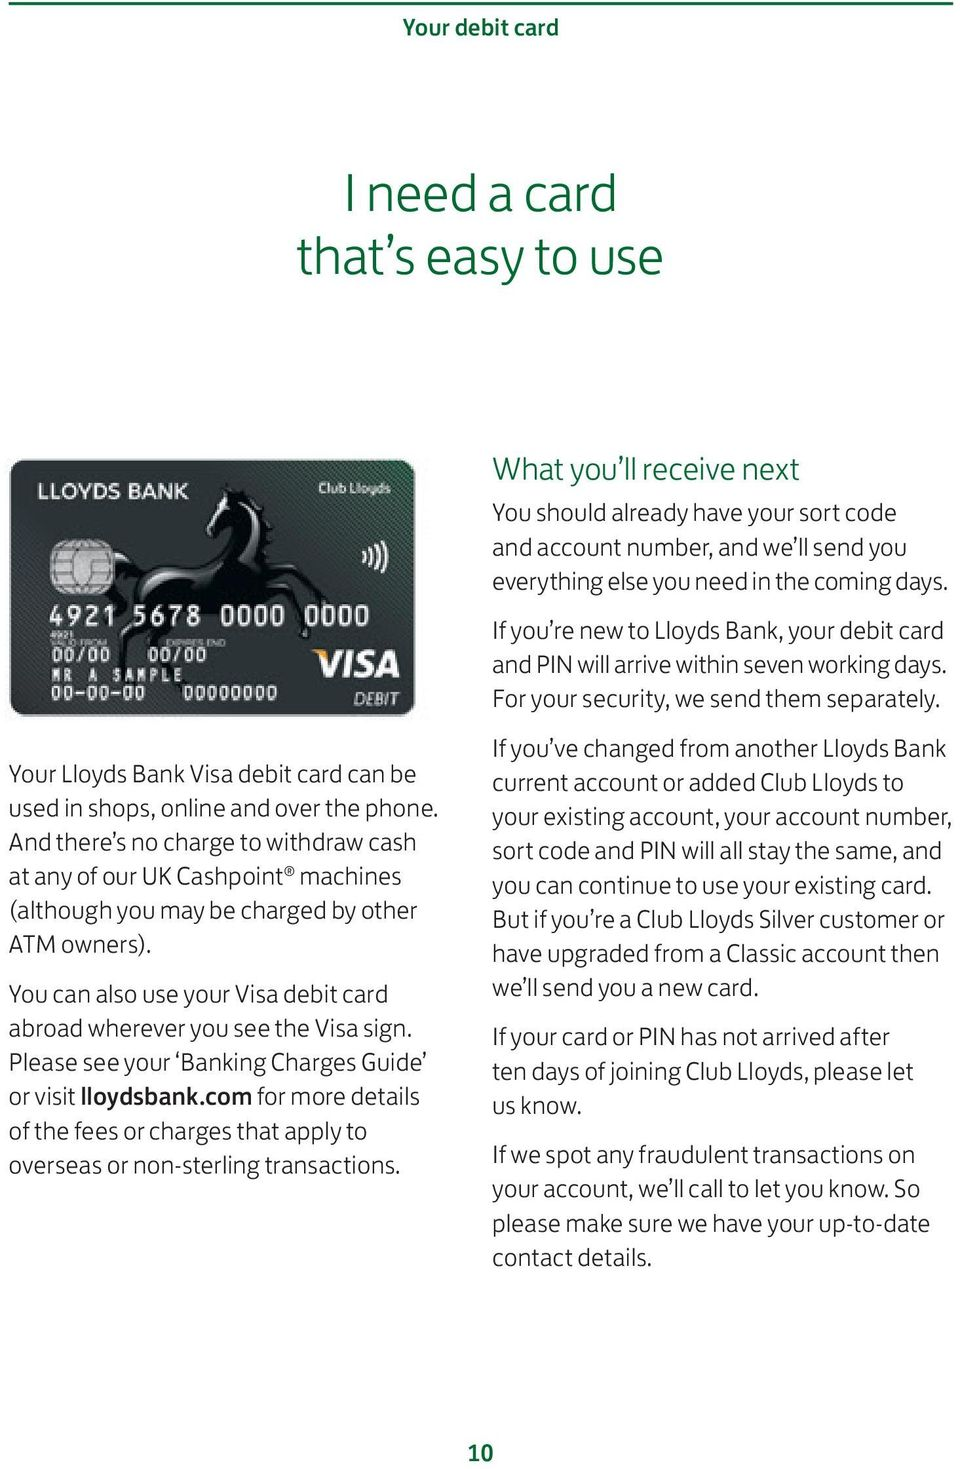 You can also use your Visa debit card abroad wherever you see the Visa sign. Please see your Banking Charges Guide or visit lloydsbank.